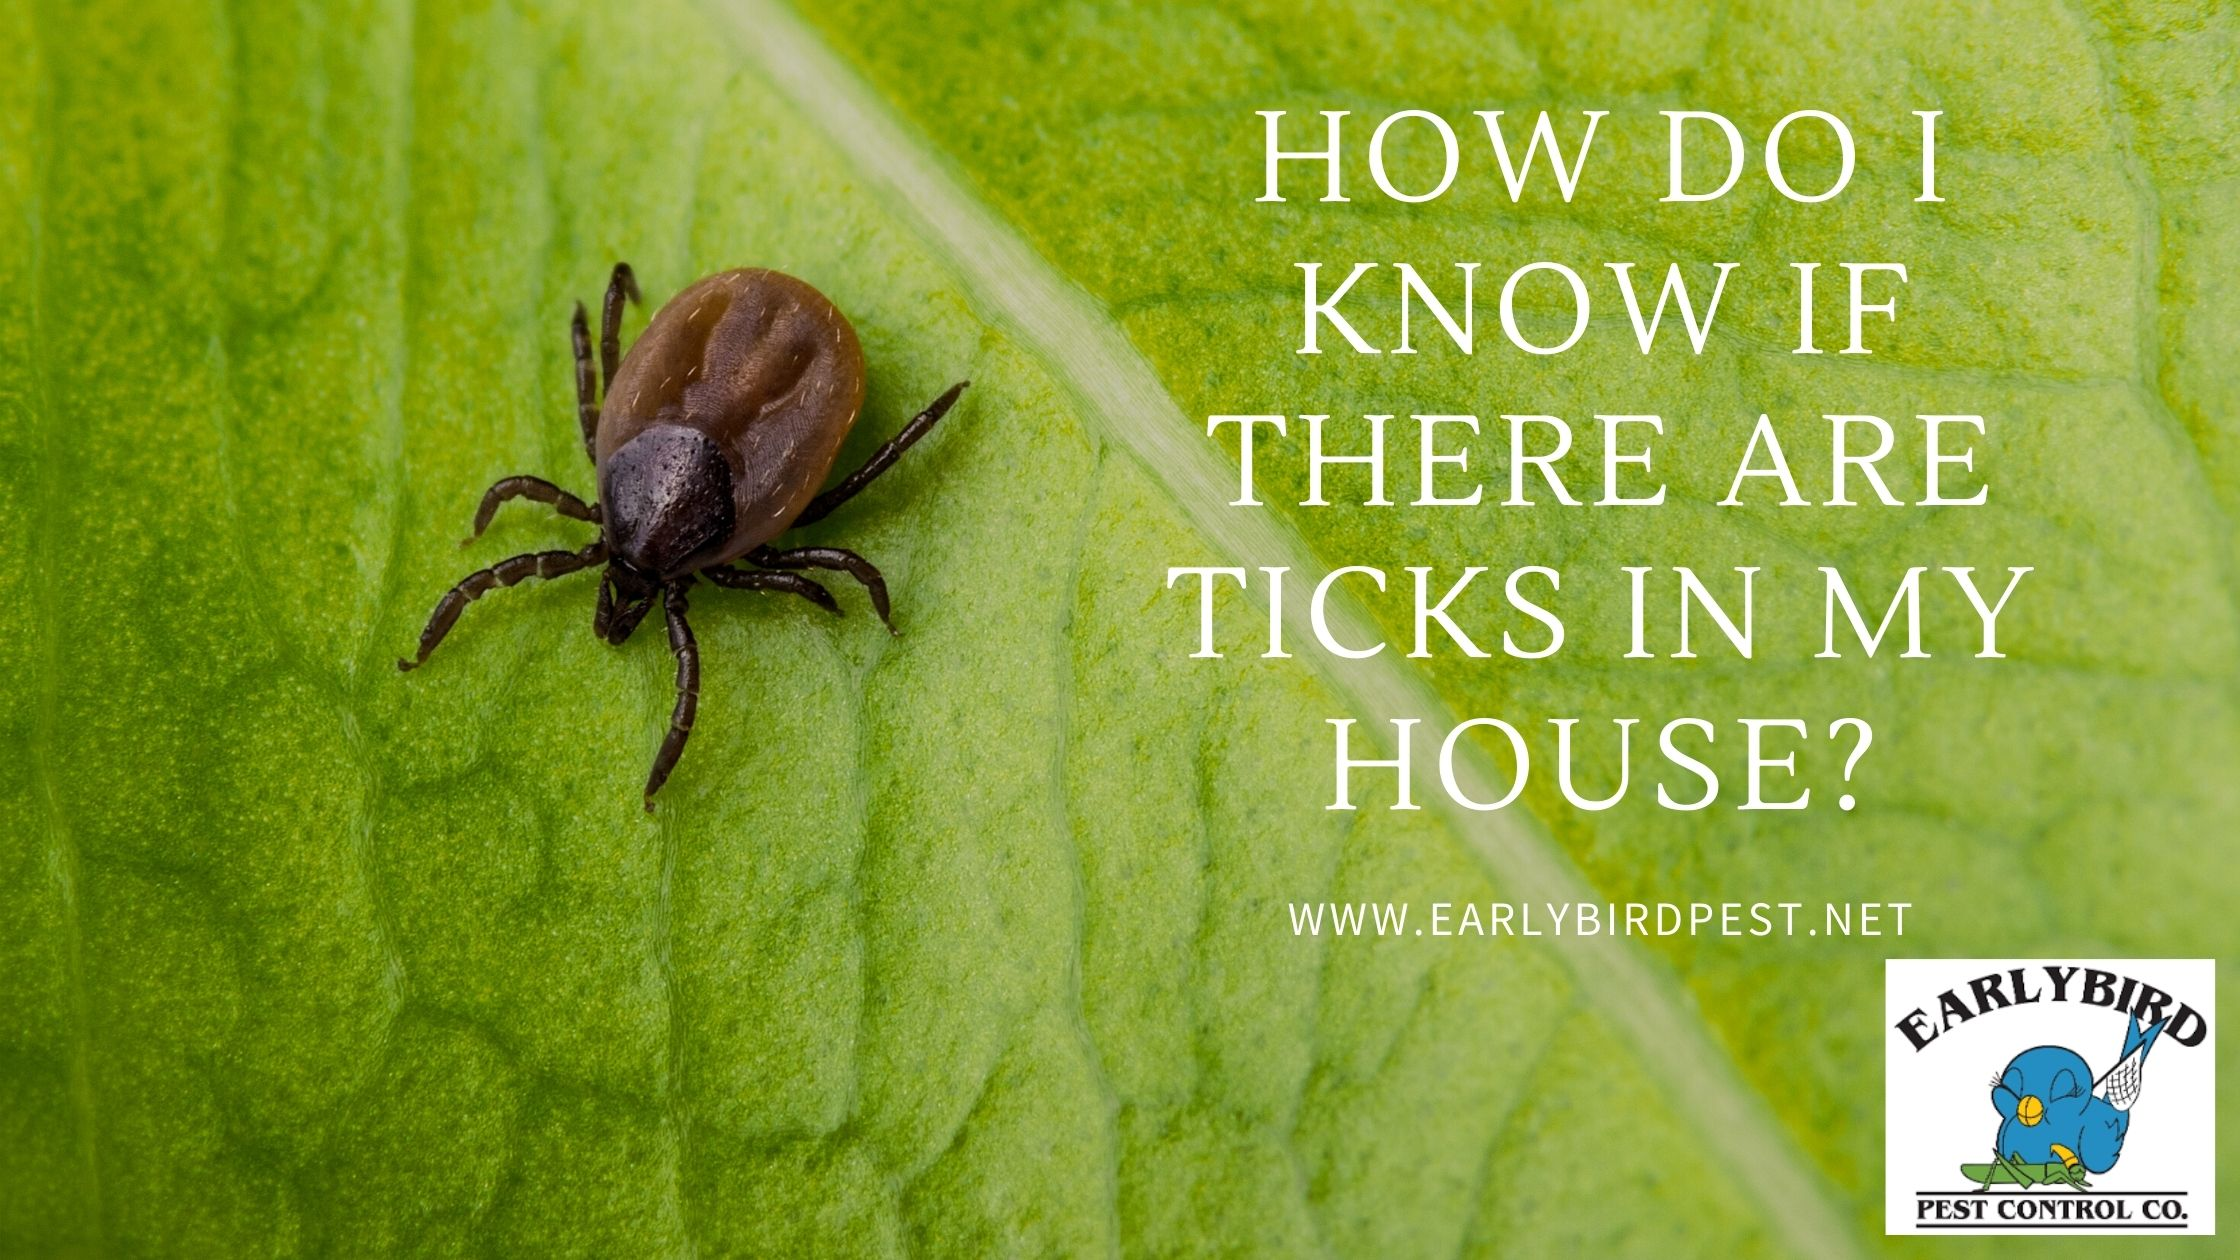 How Do I Know if There are Ticks in My House?